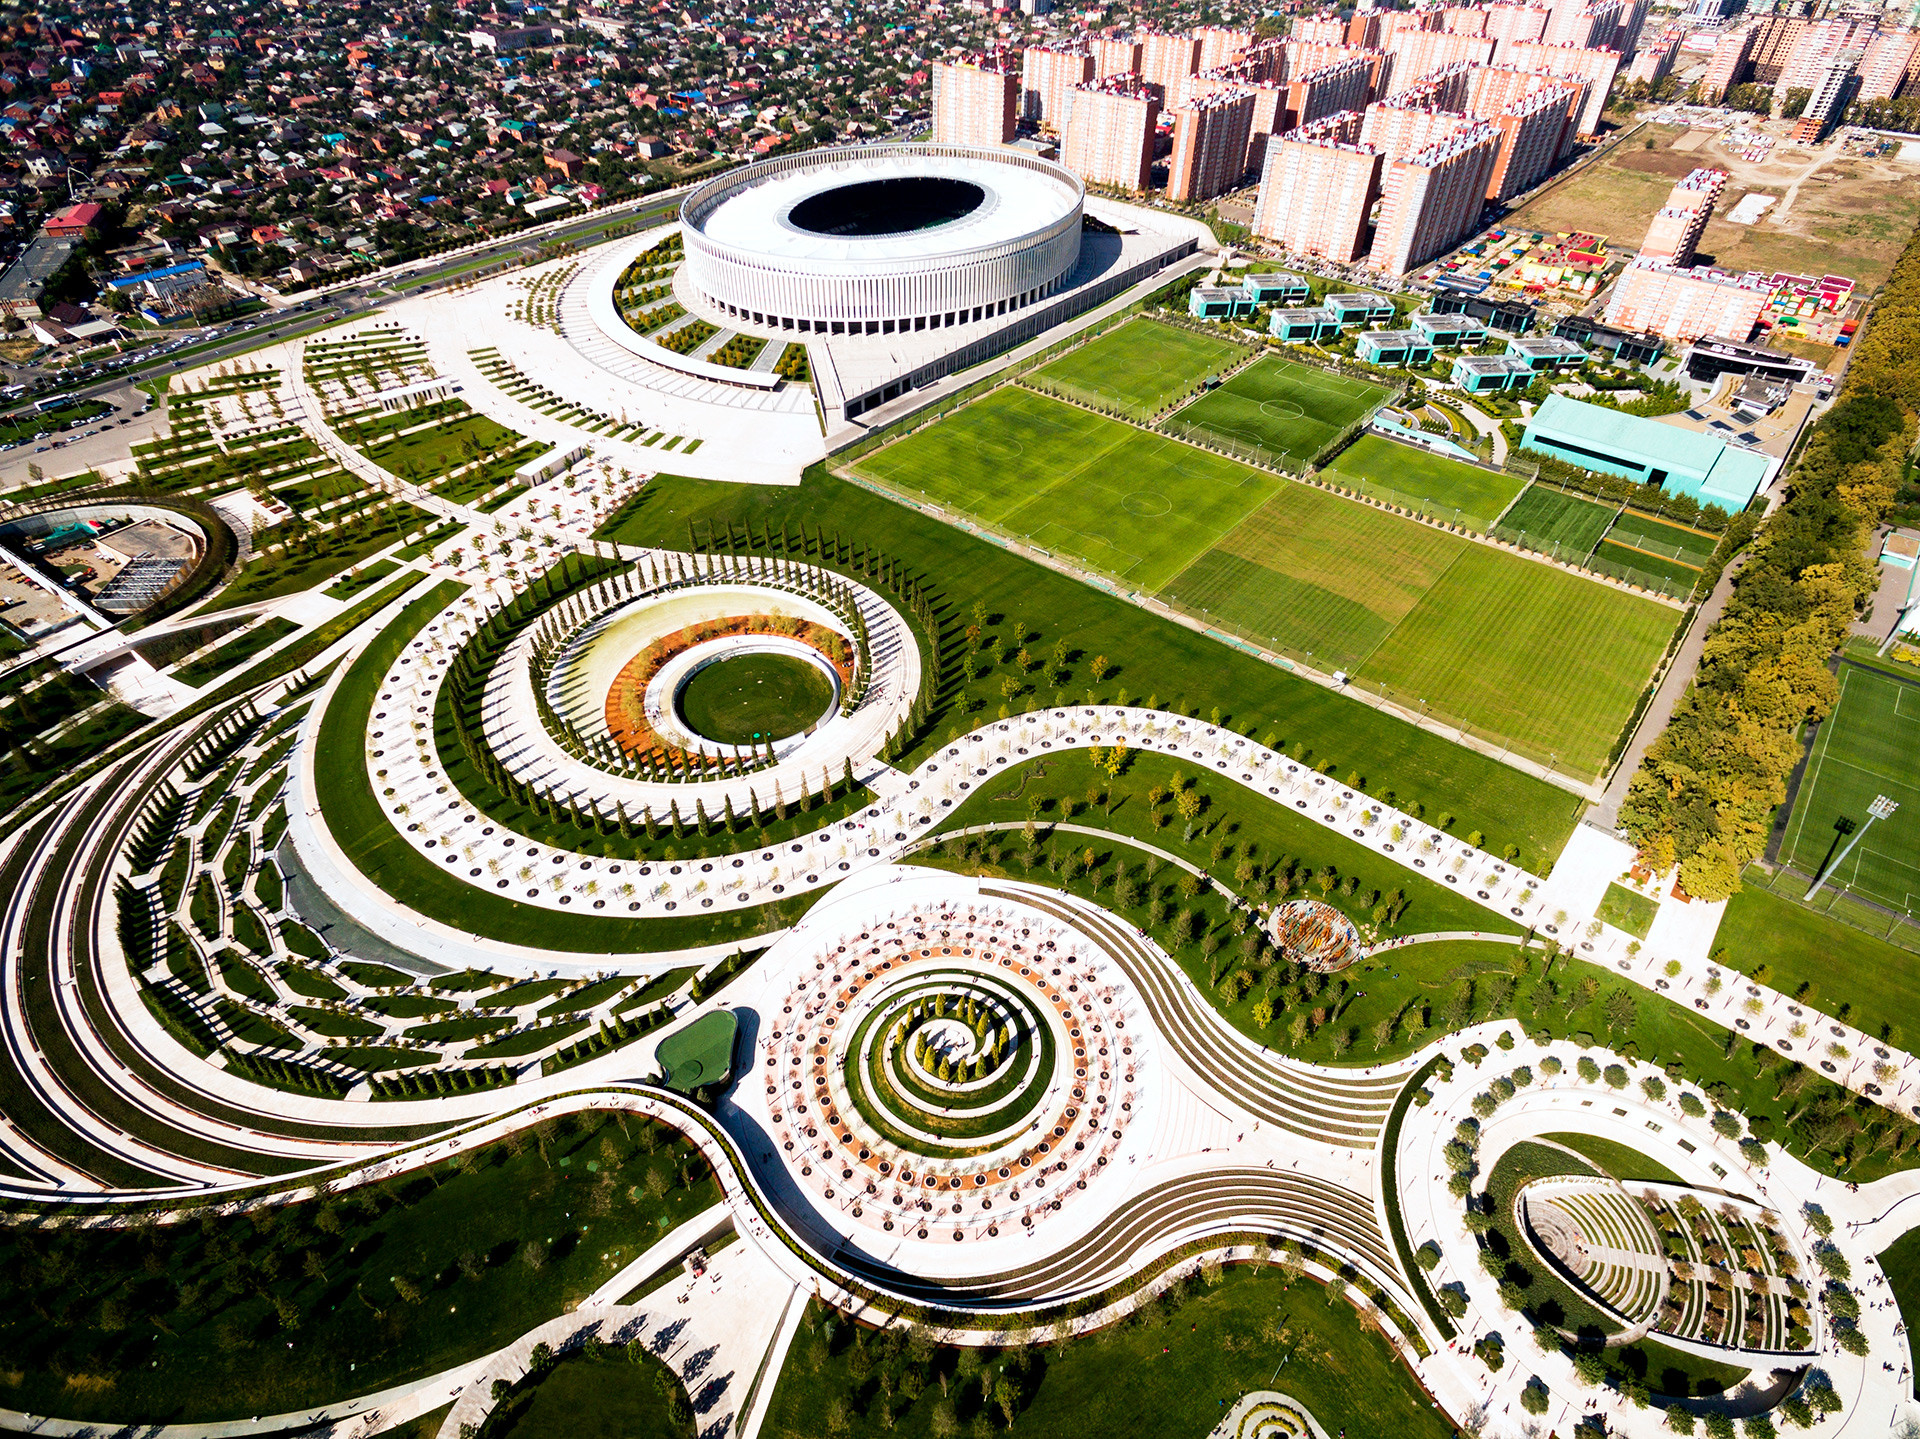 The Pictures Of This Stunning Park Will Make You Want To Move To Krasnodar Russia Beyond